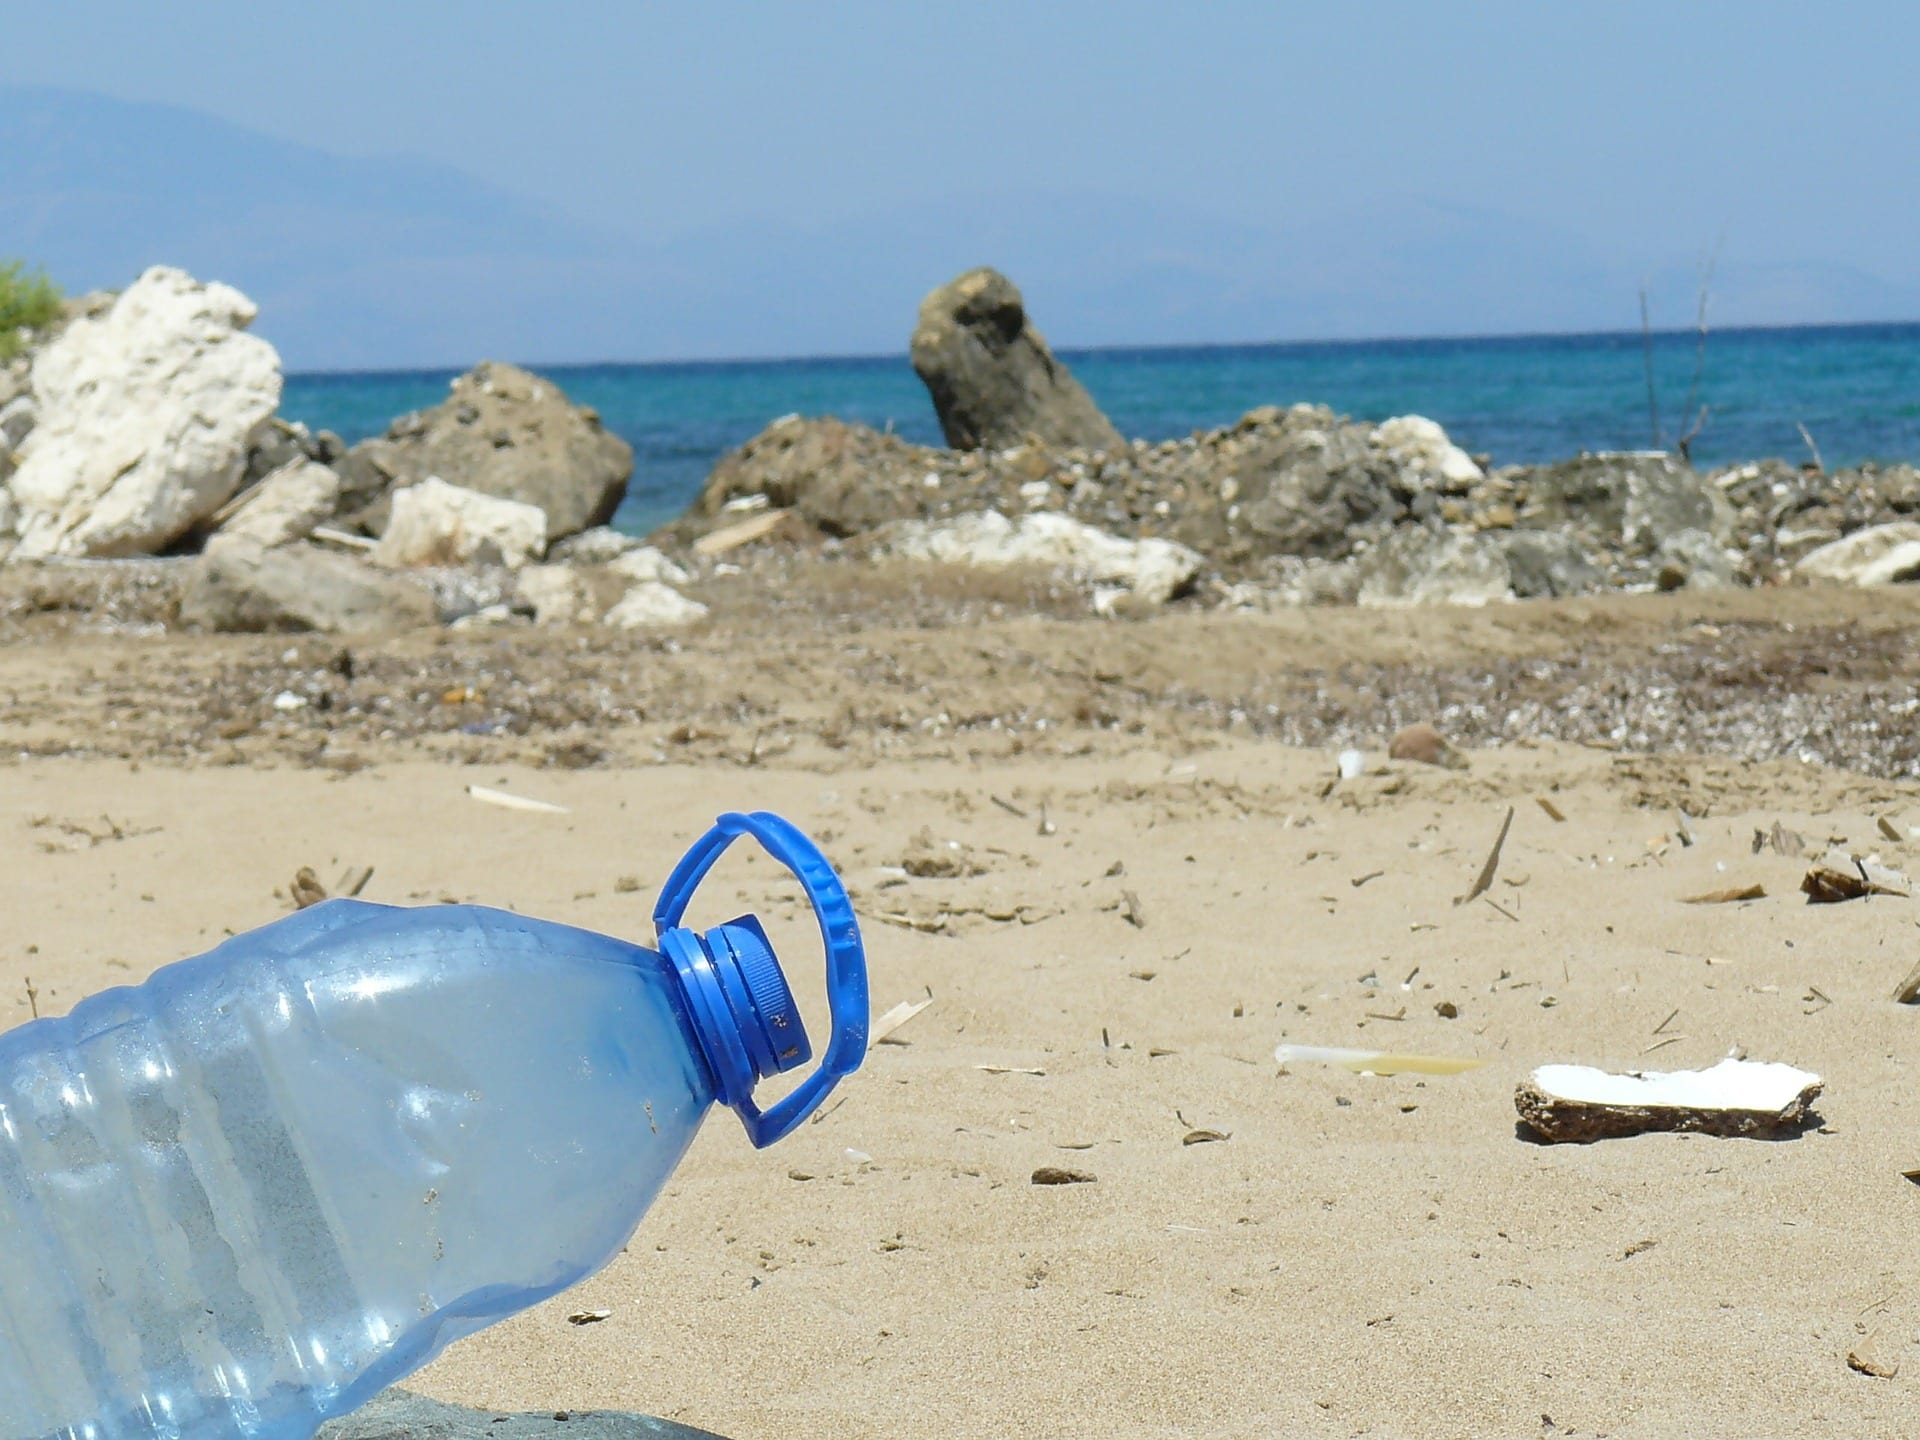 G7 Work to Reduce Plastic Waste through the Ocean Plastics Charter